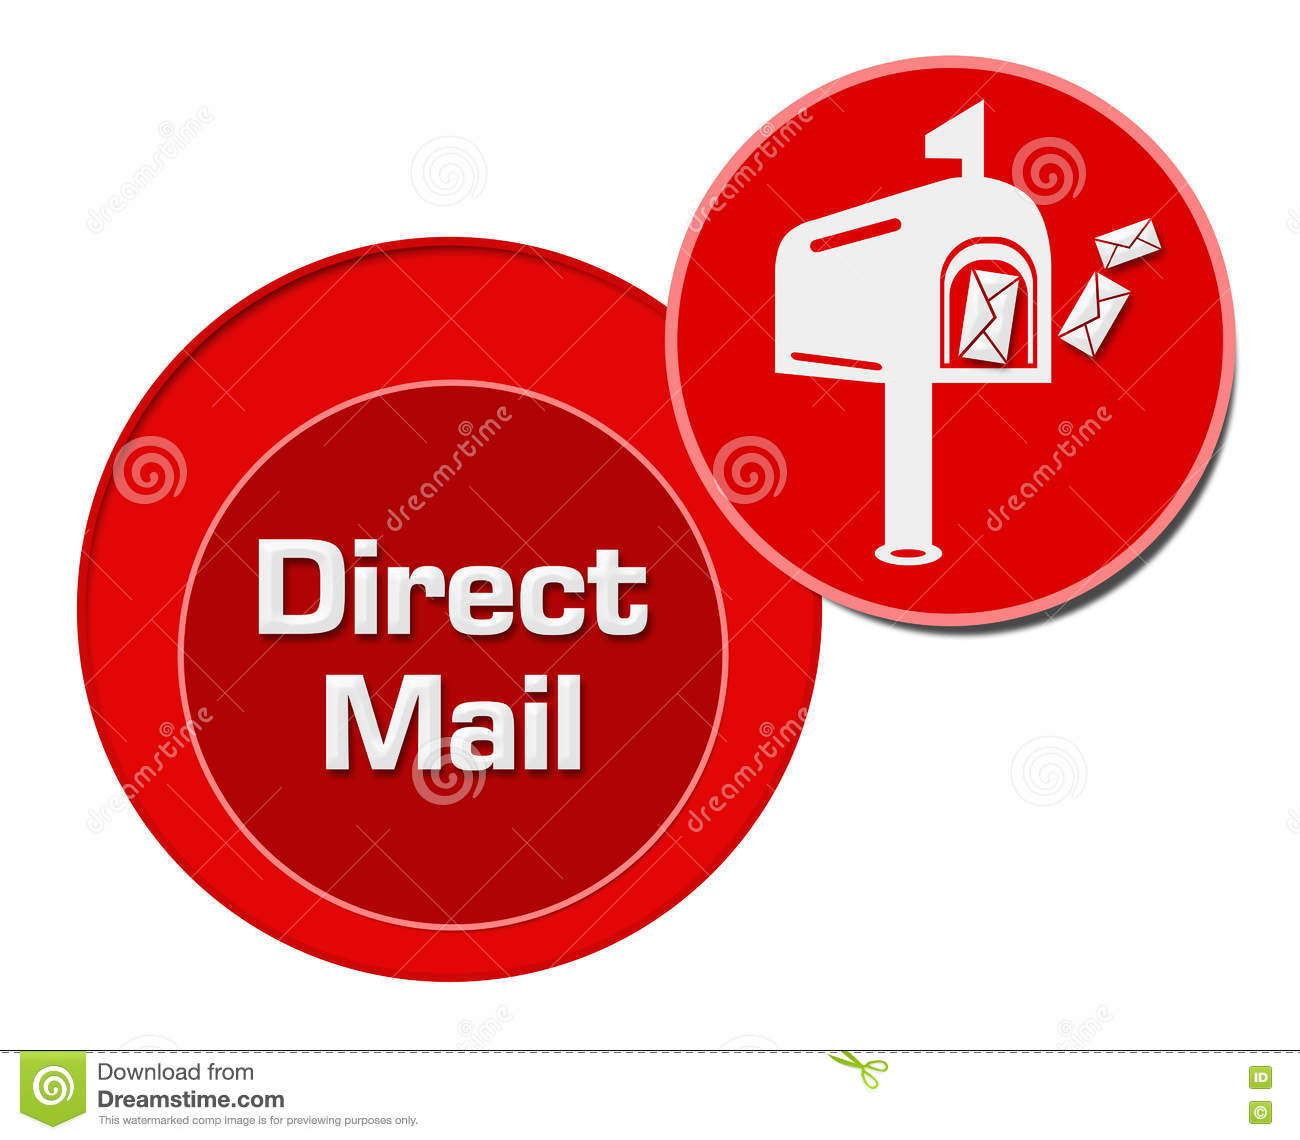 how to stop direct mail